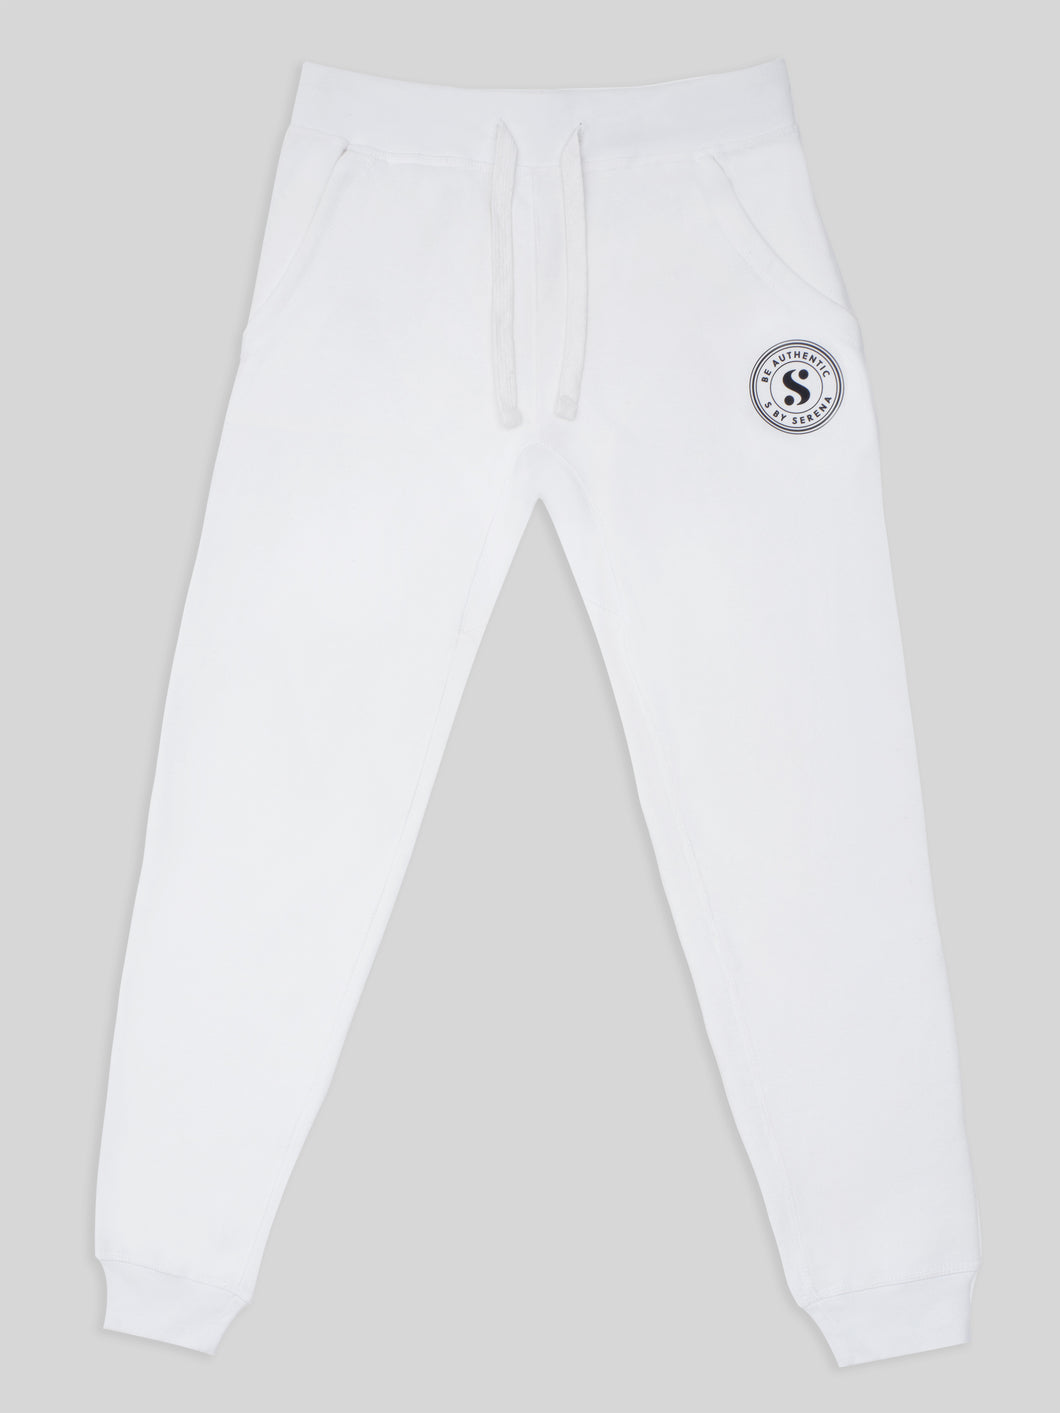 Be Authentic Unisex Lounge Pant in White